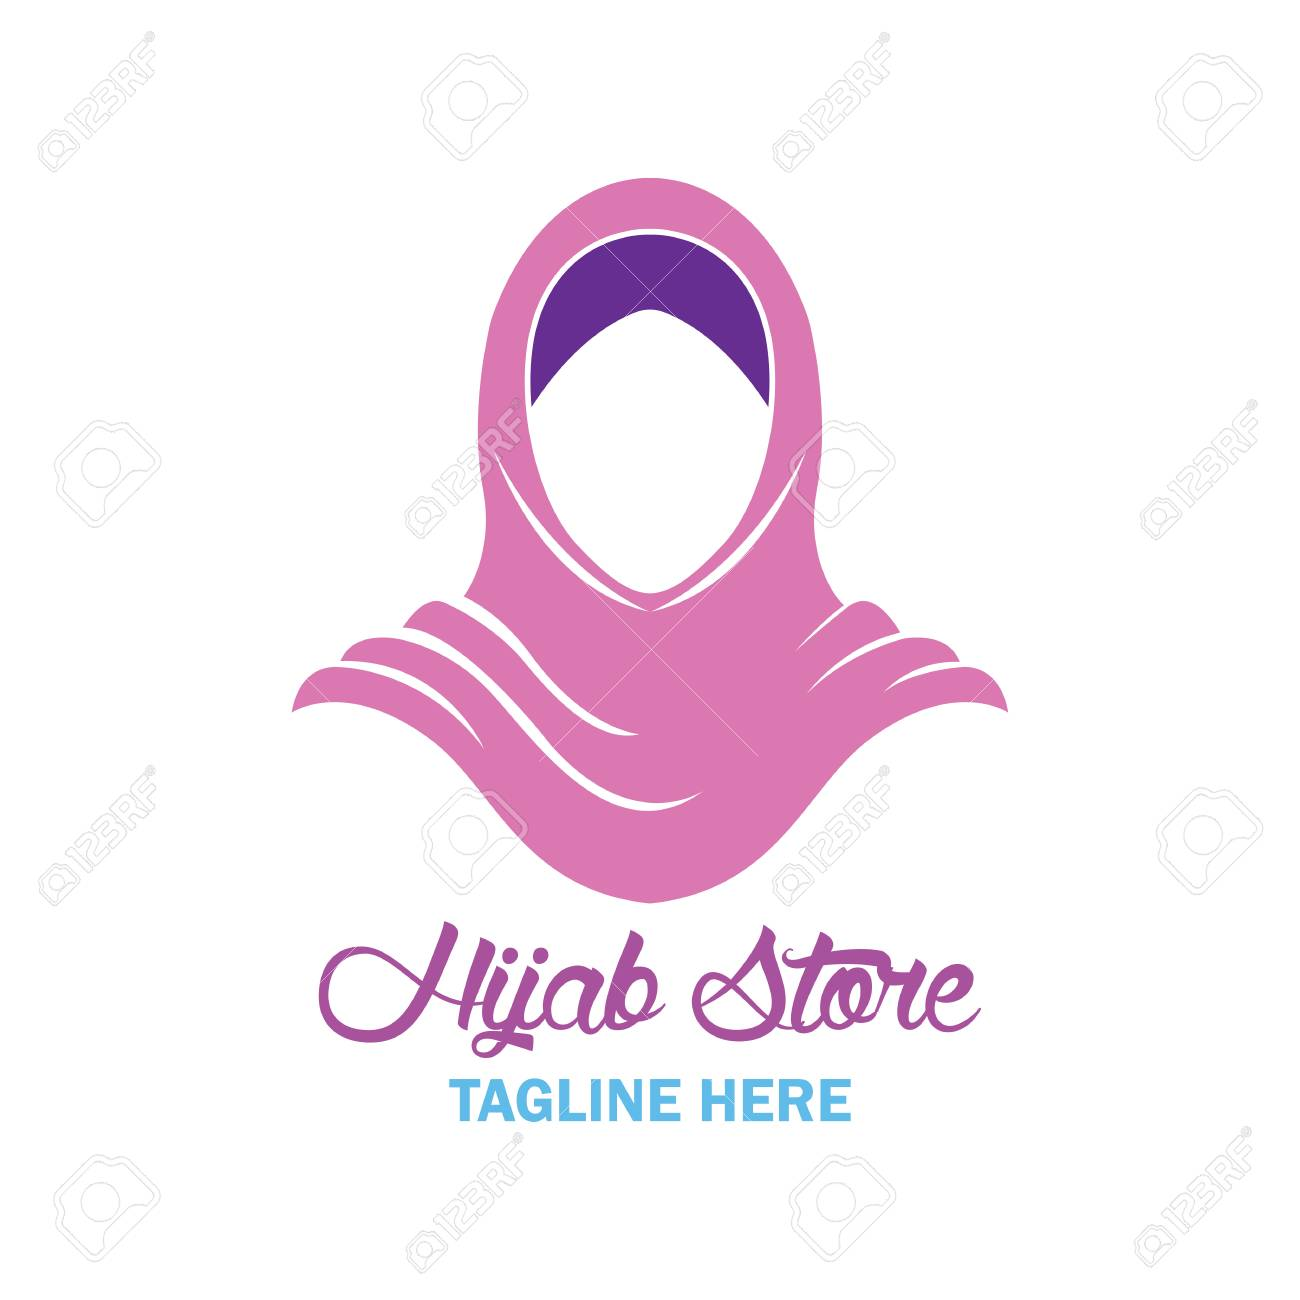 hijab logo with text space for your slogan / tag line, vector illustration  Stock Vector